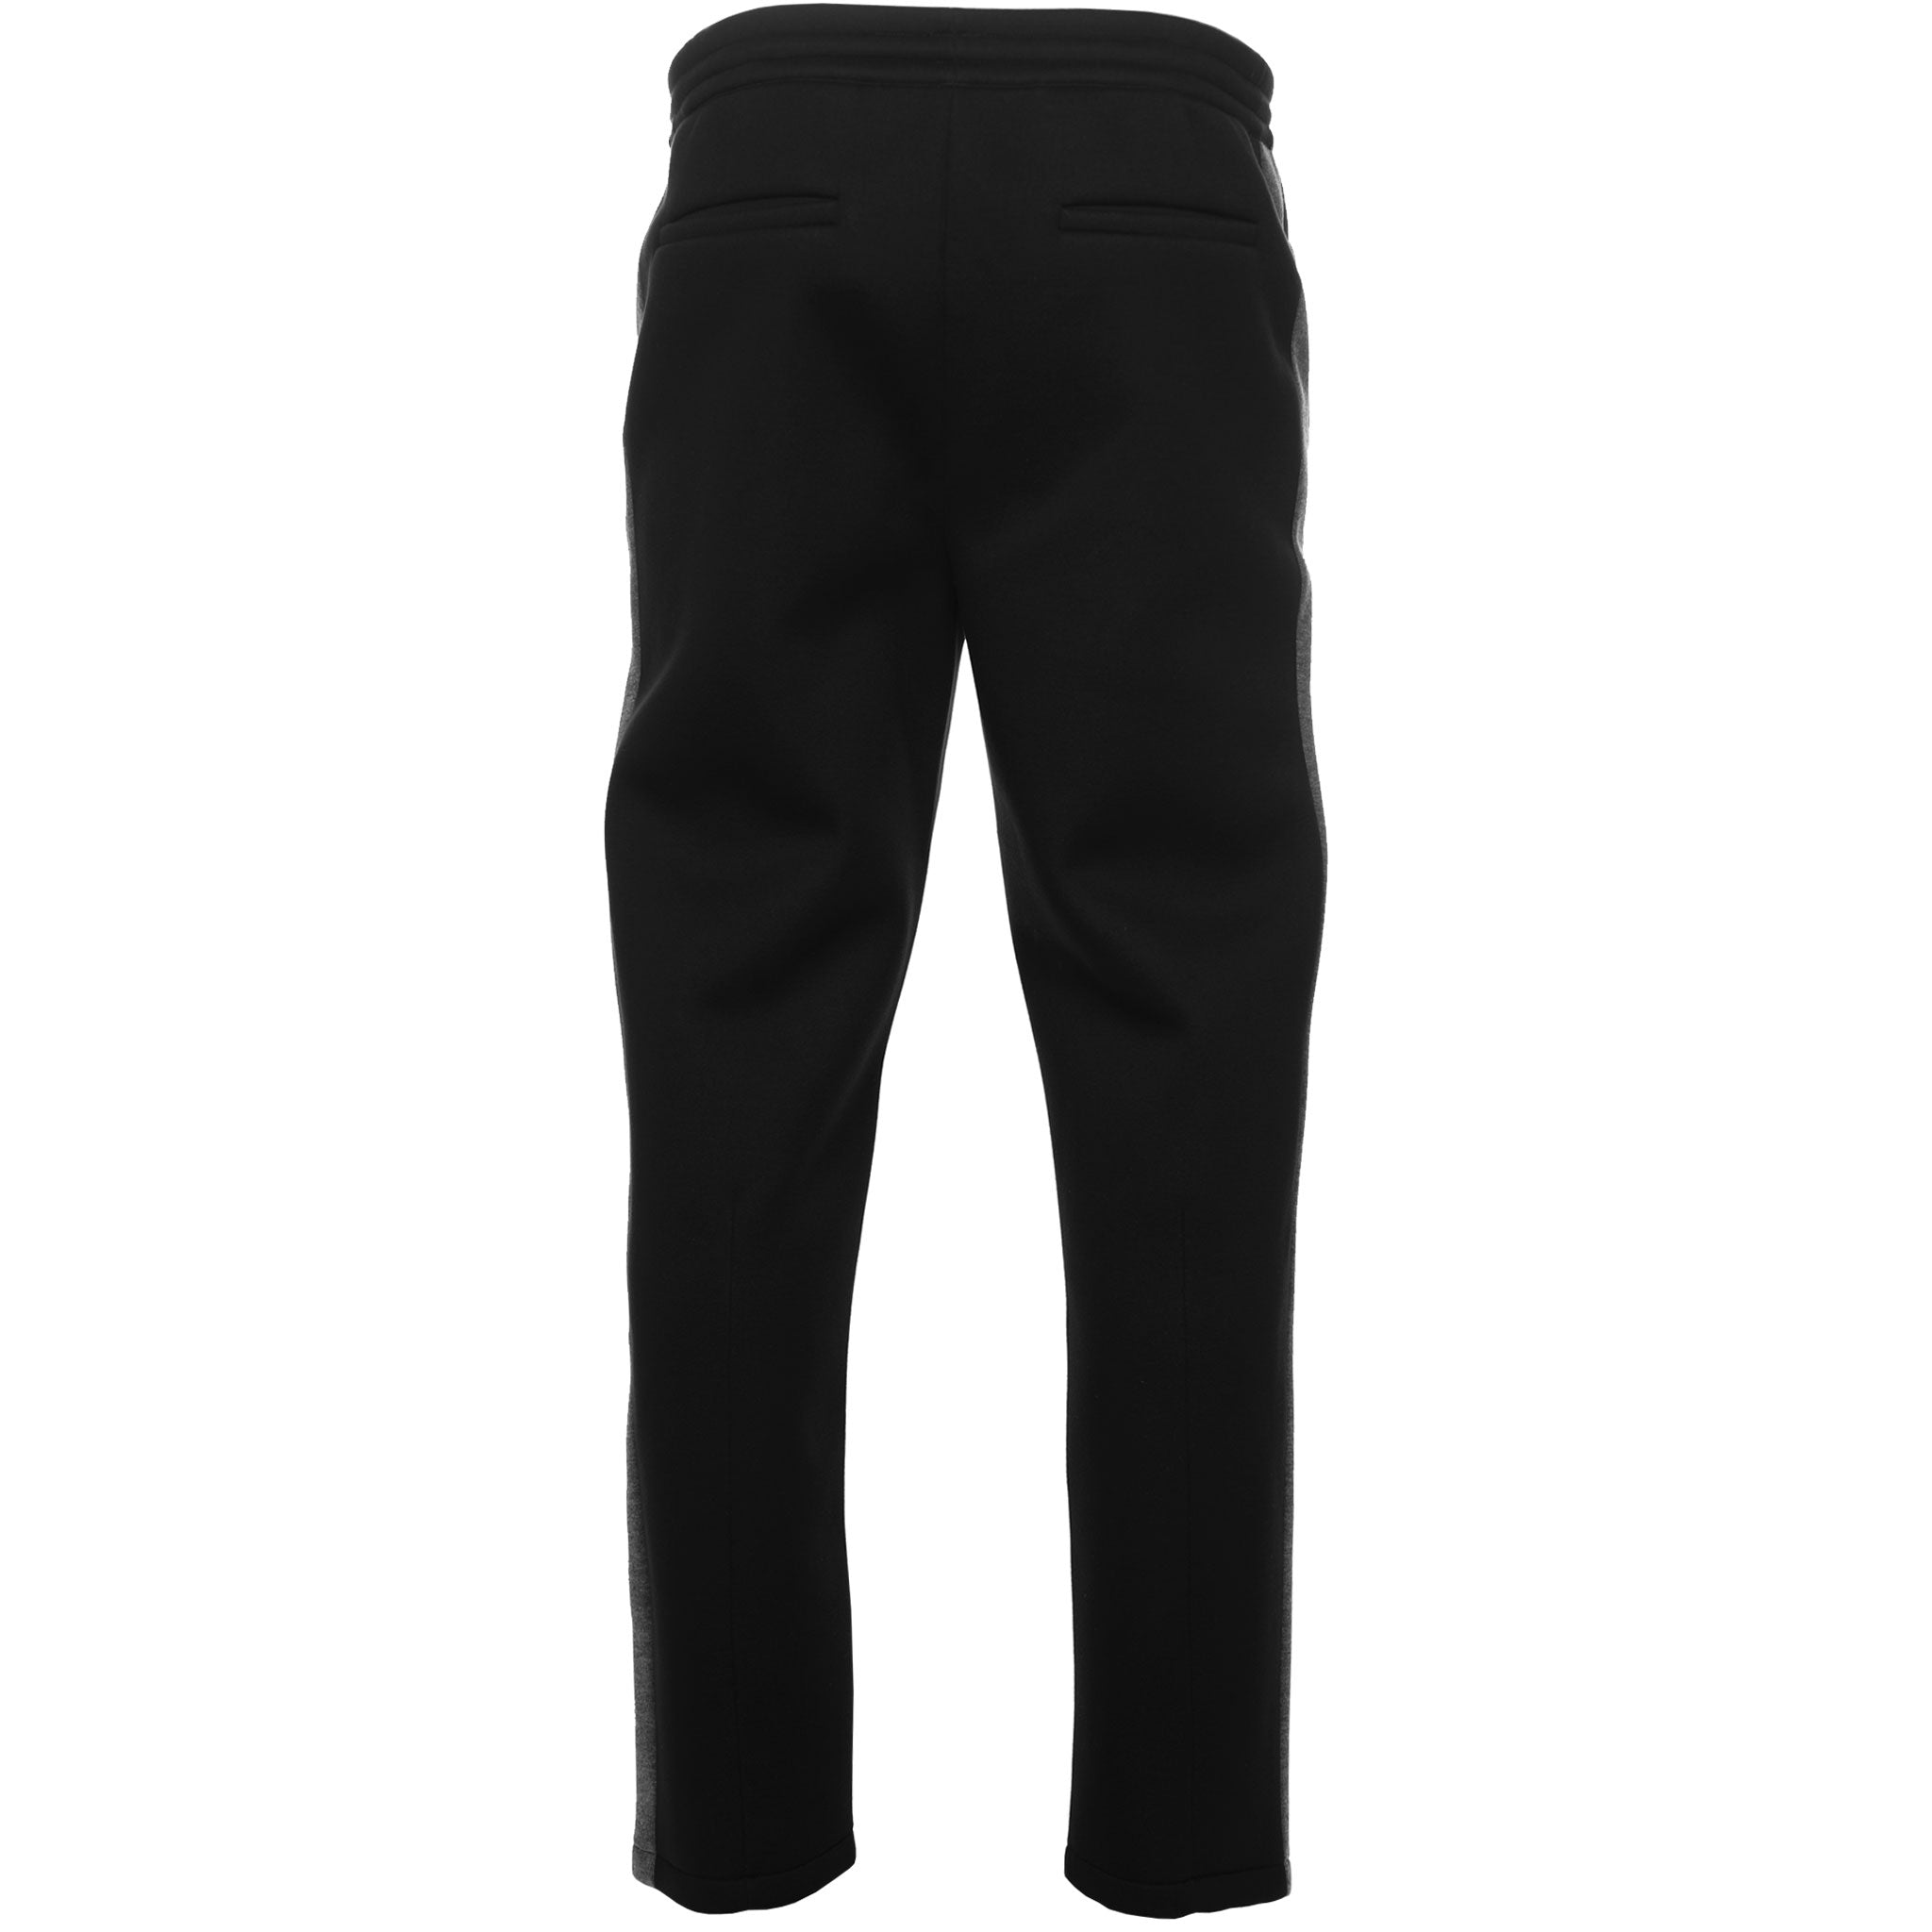 Helmut Lang Black Pleated Contrast Track Pants Front Neoprene